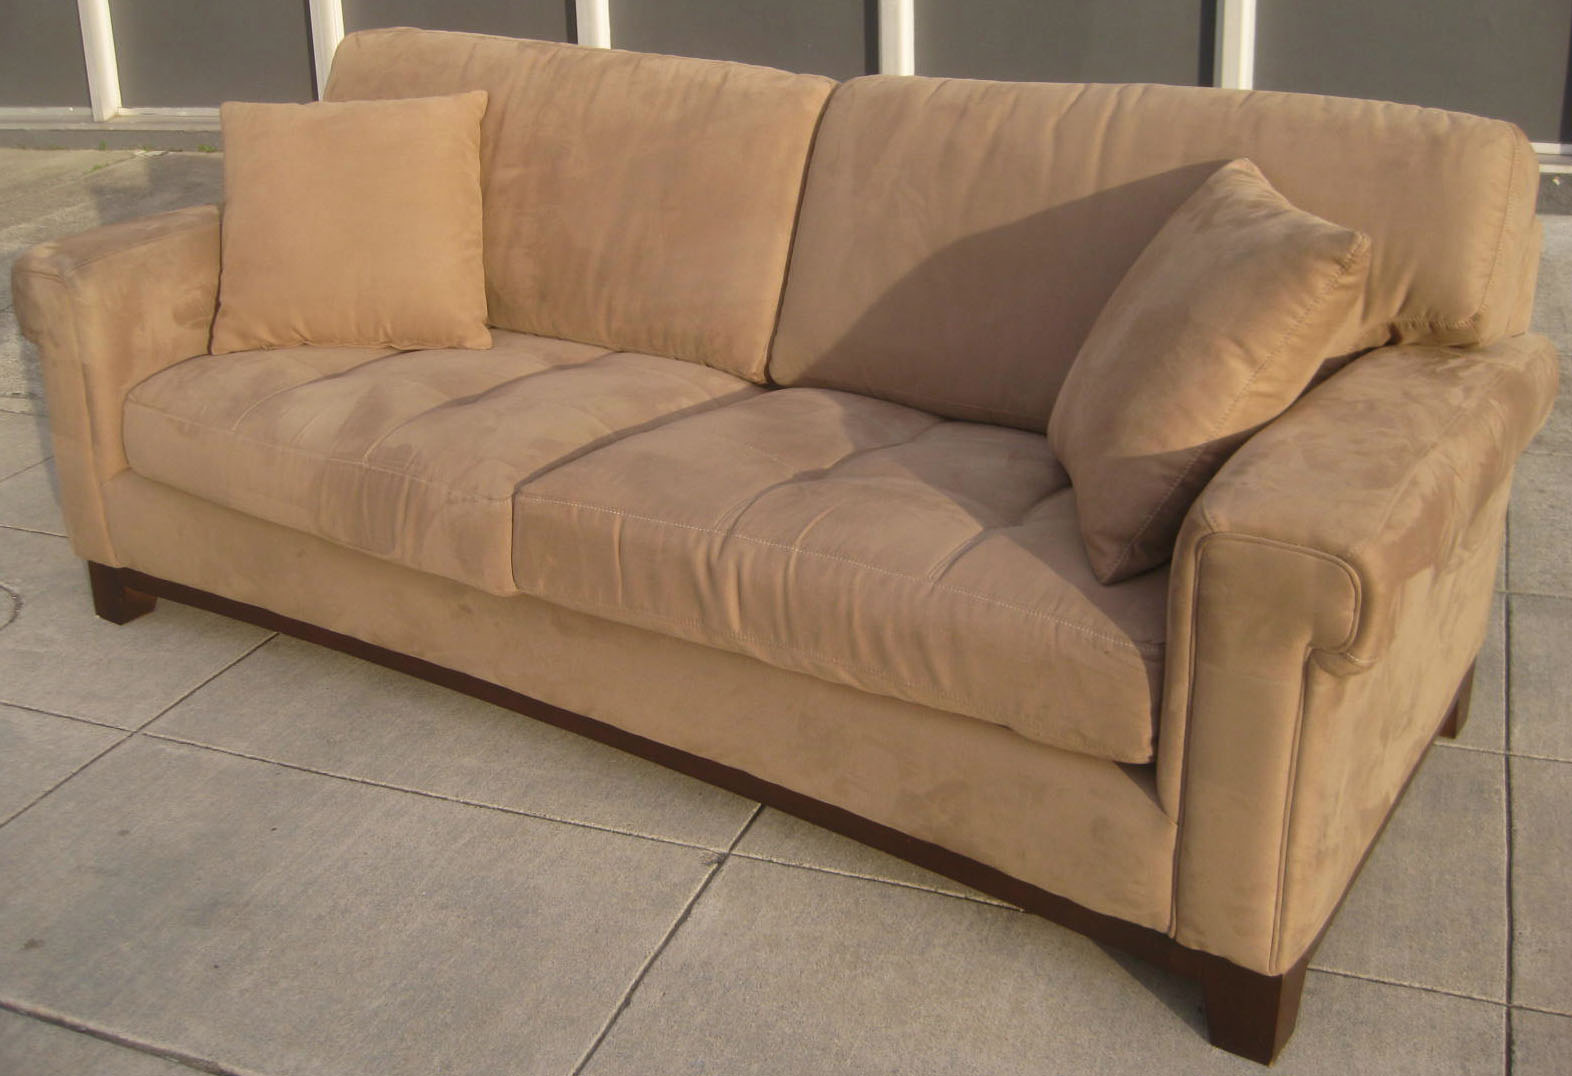 Sold Tan Microsuede Sofa 210